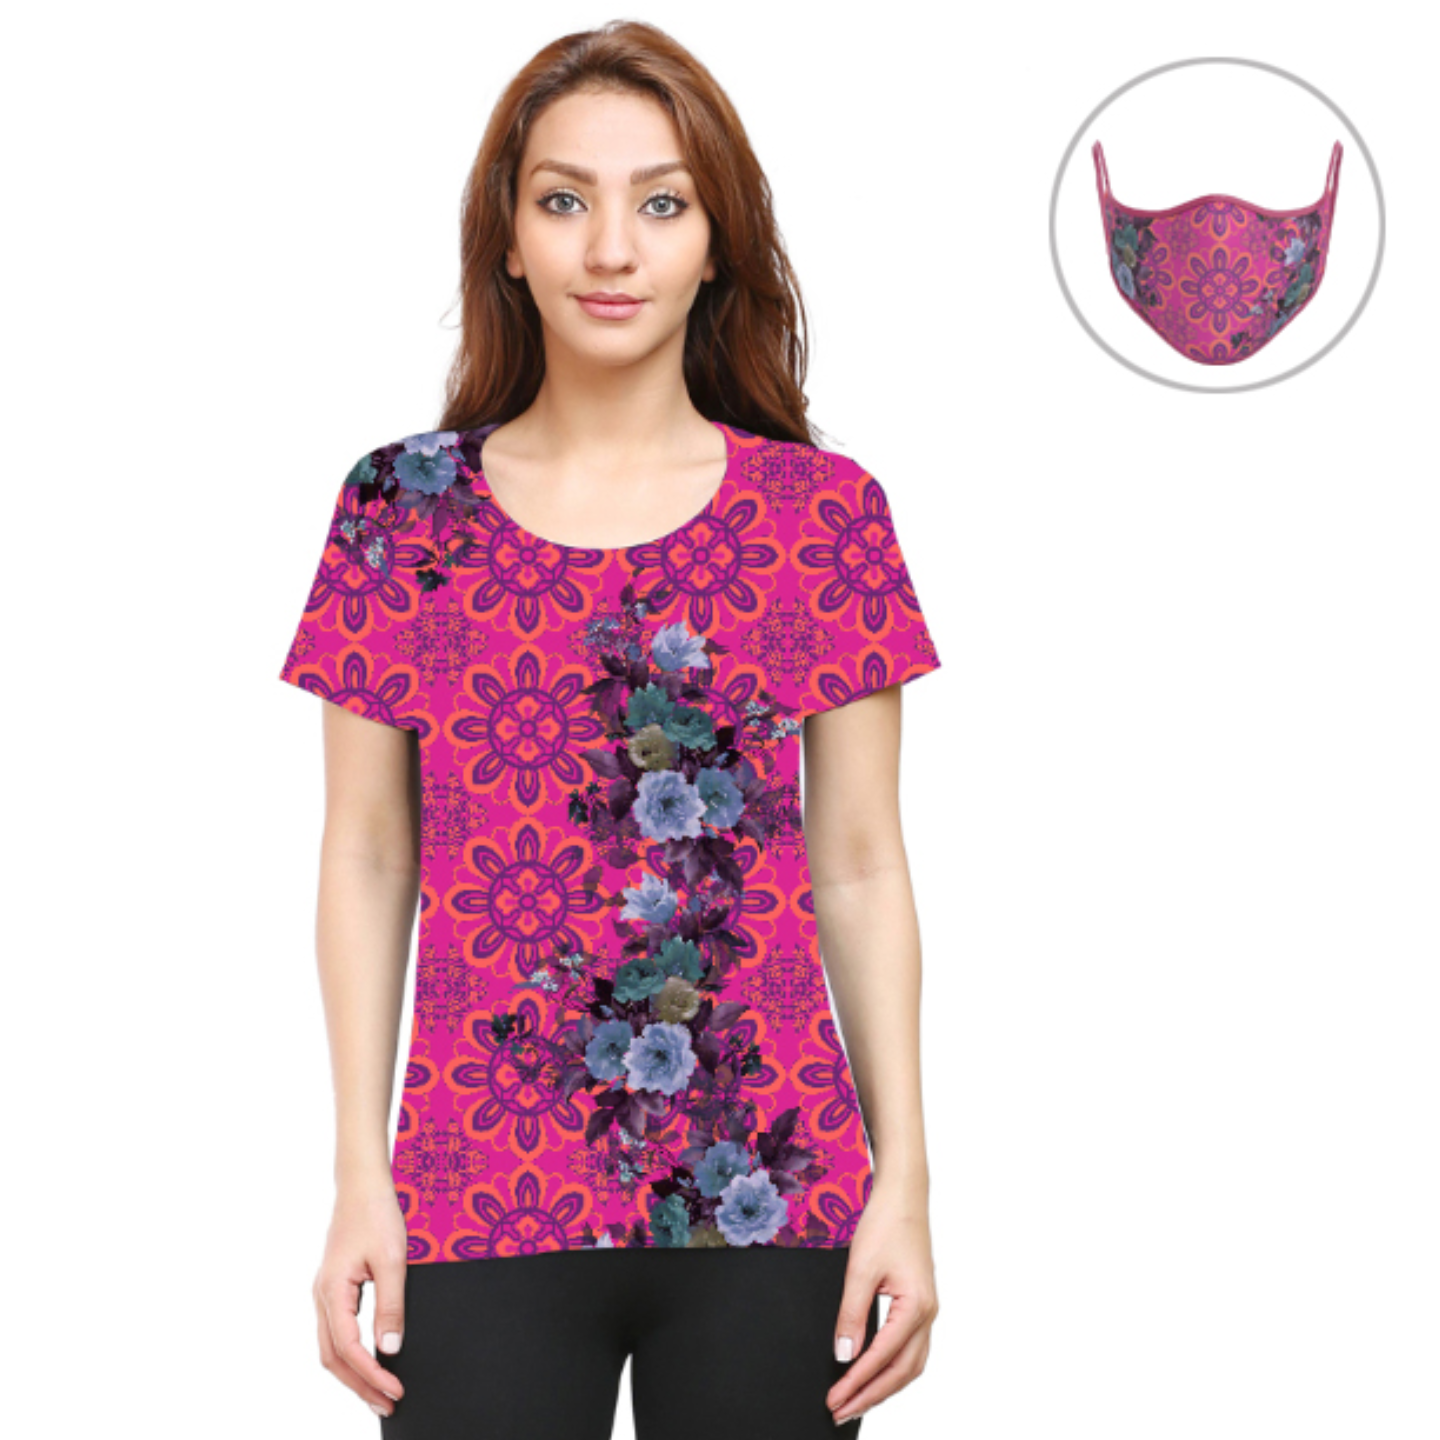 Women Pink and Blue Floral T-Shirt Mask Combo